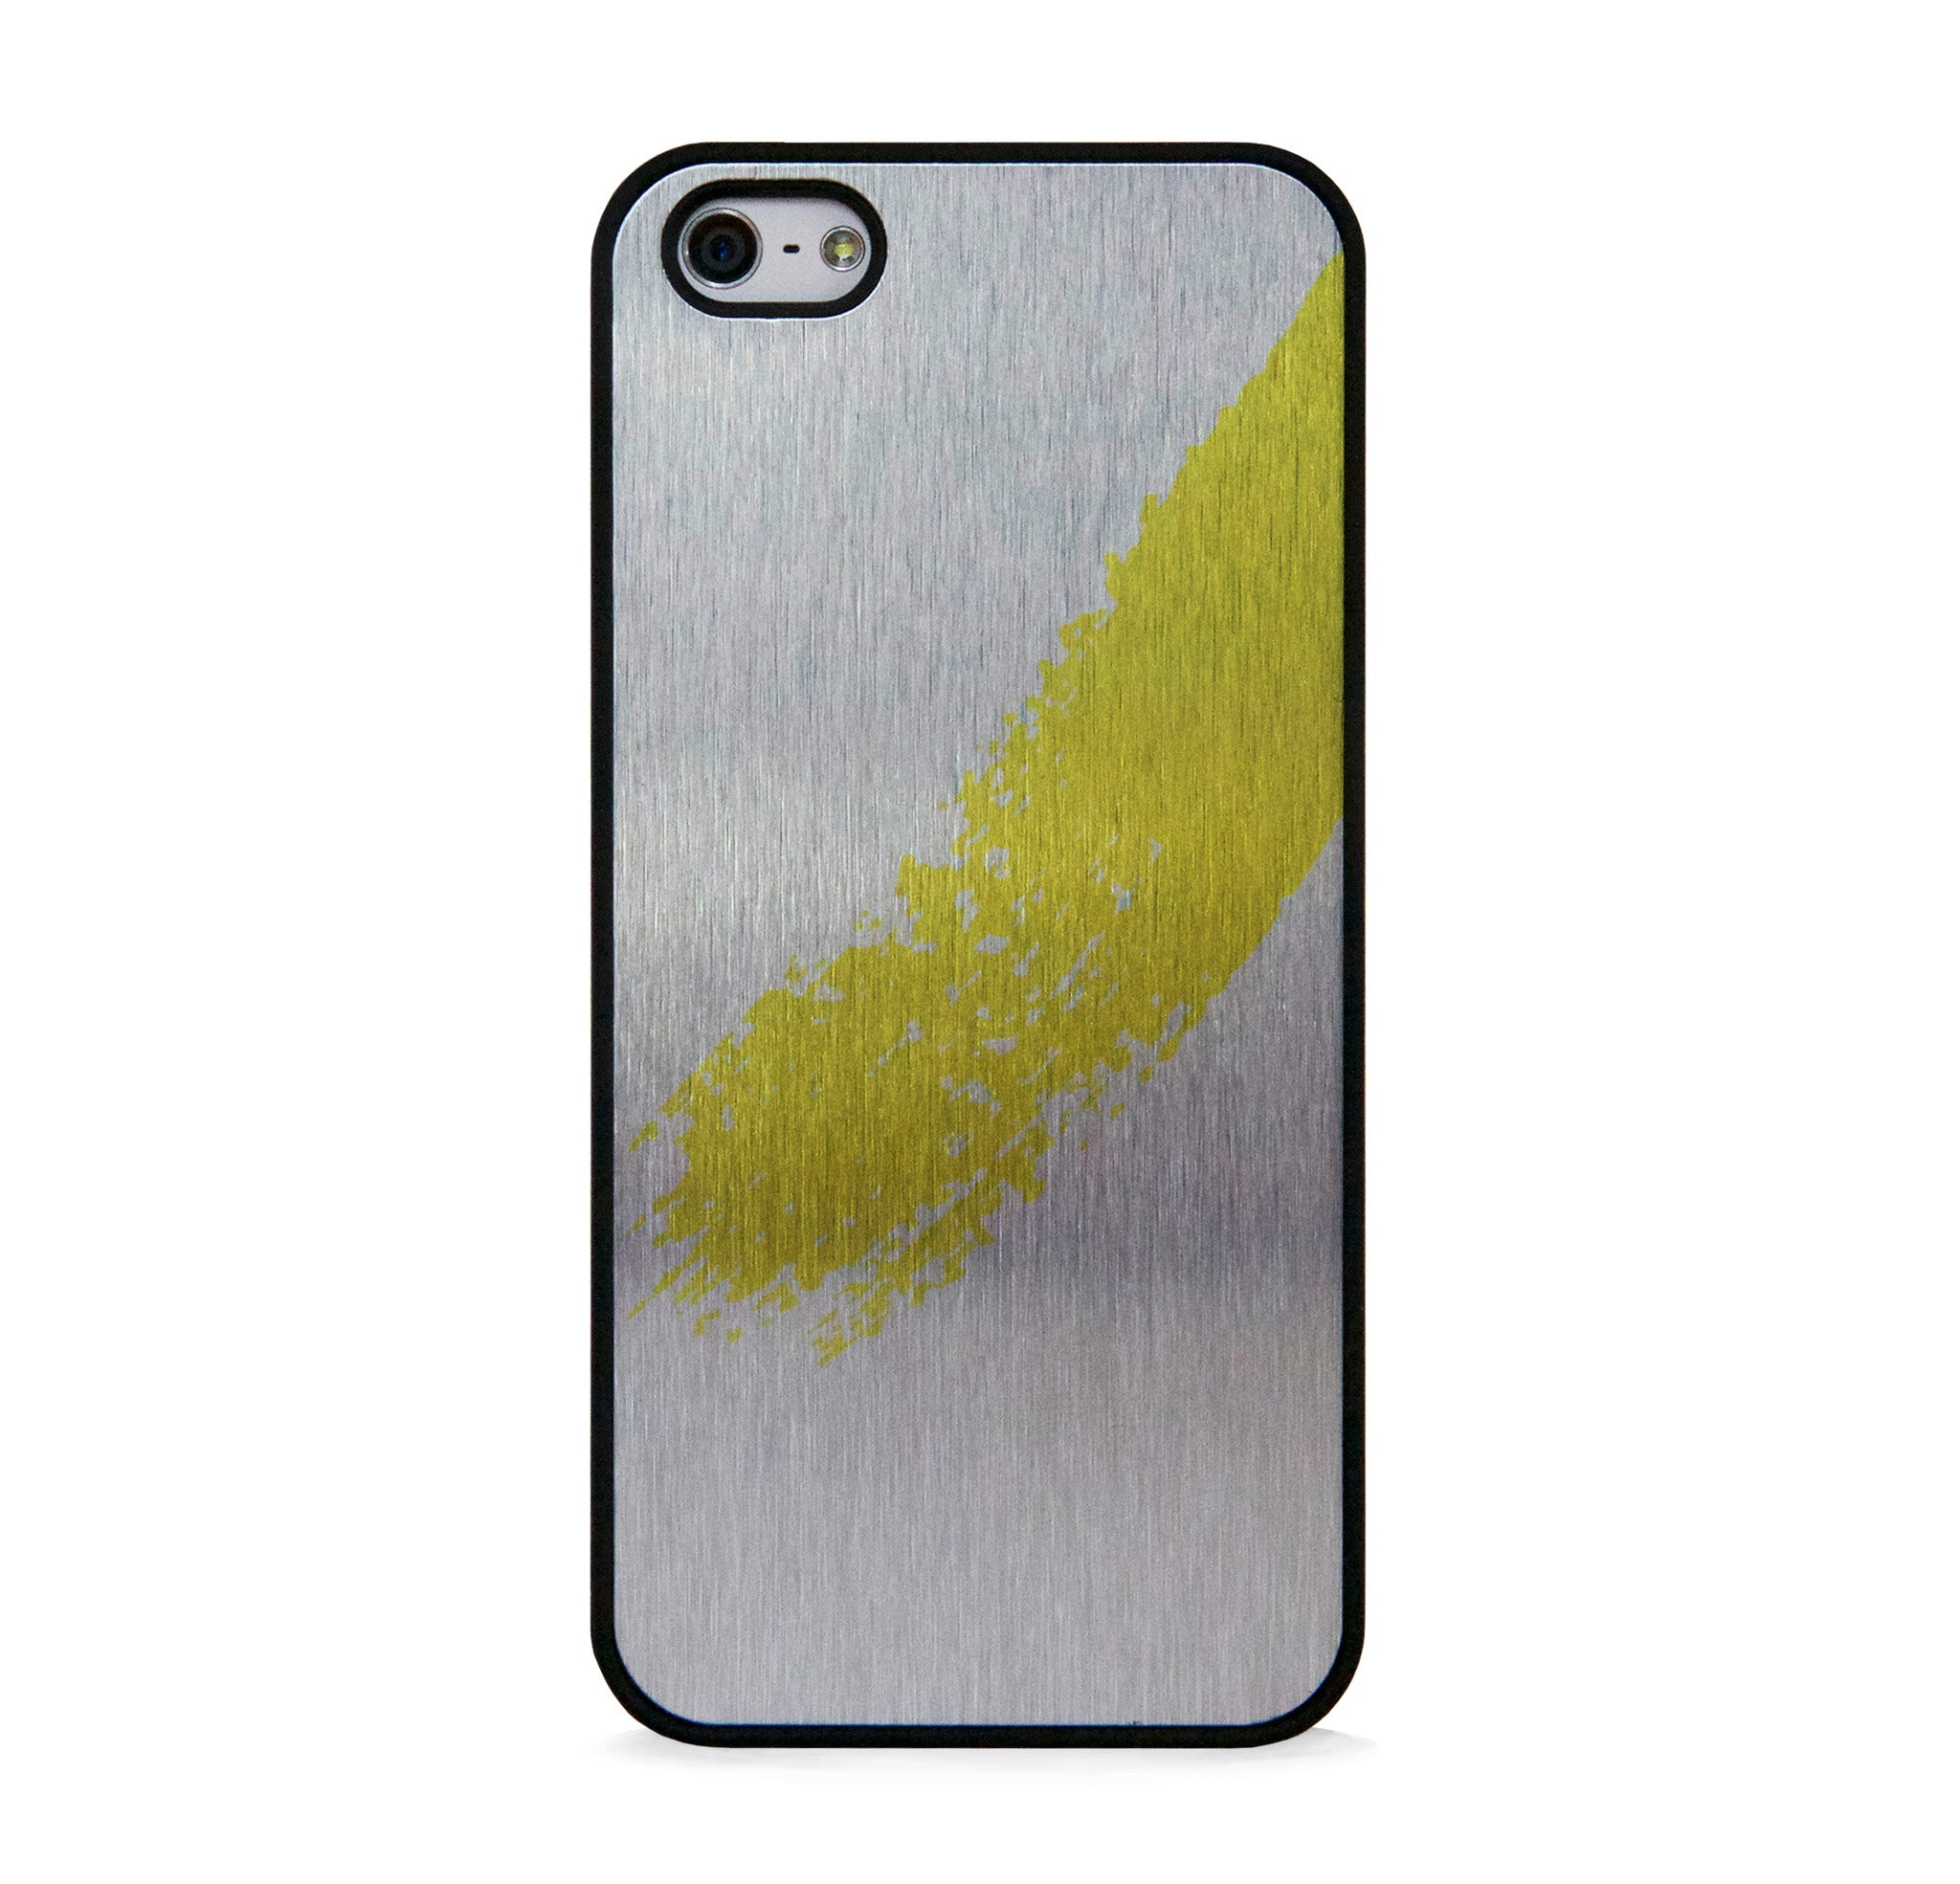 STYLISH CALLIGRAPHY YELLOW ON SILVER FOR IPHONE 5/5S